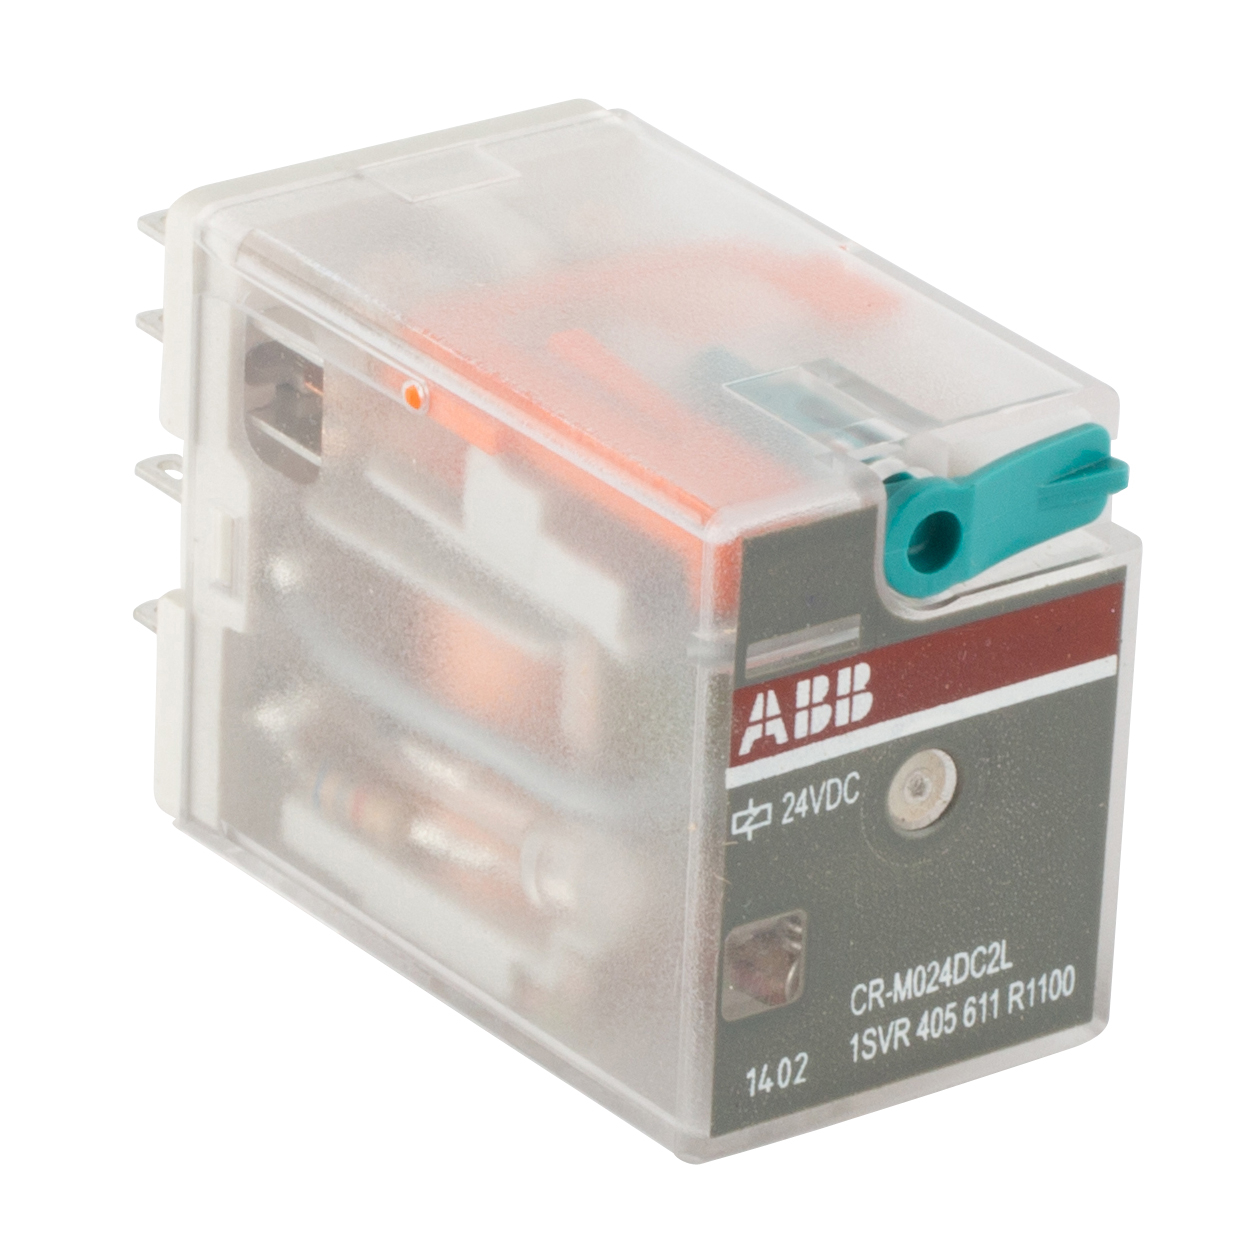 ABB 1SVR405611R1100 Miniature Interface Relay